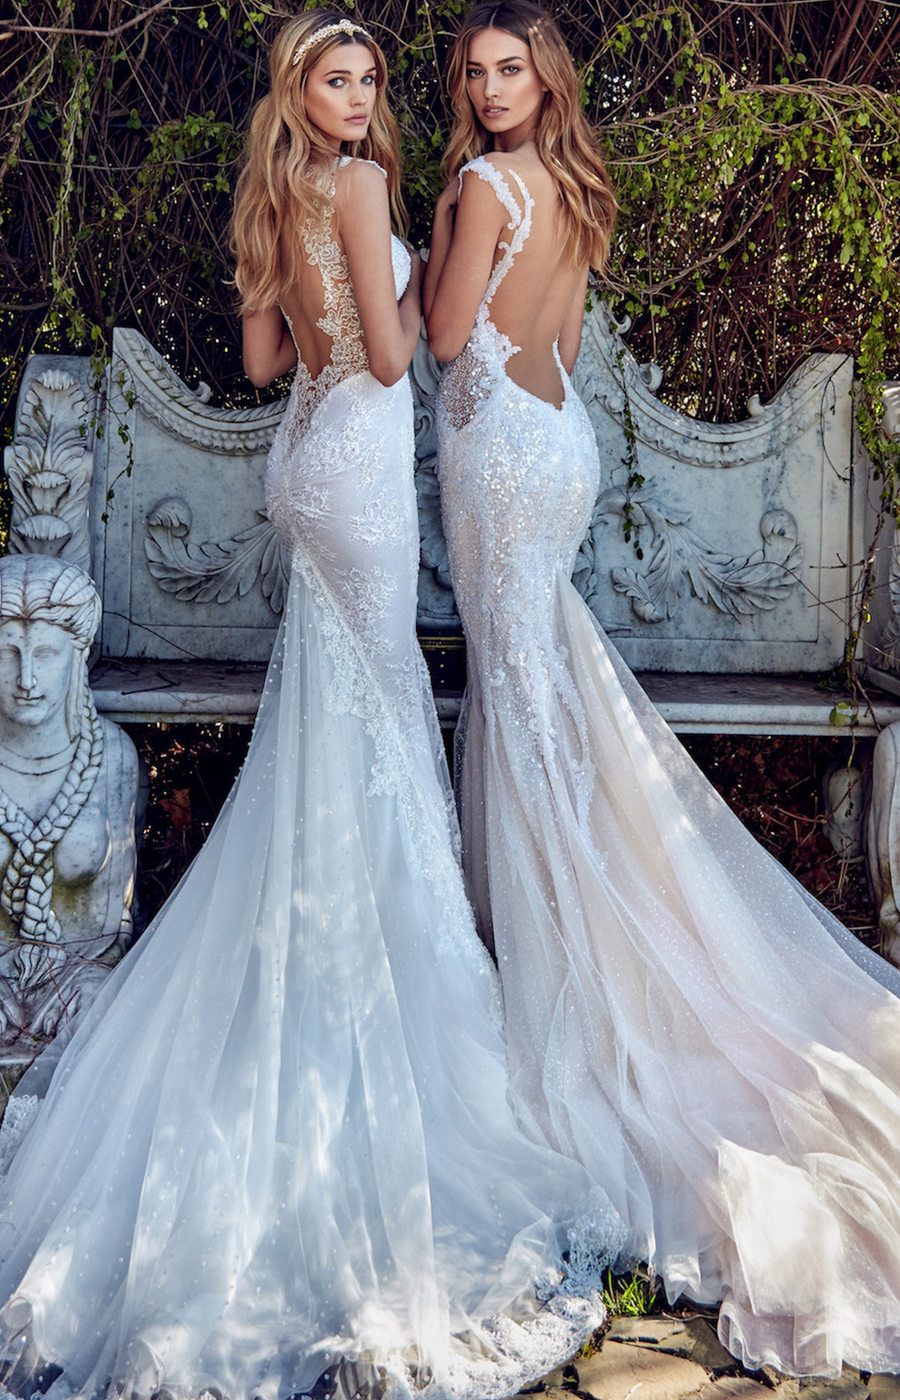 Galia Lahav Le Secret Royal Samantha and Avena